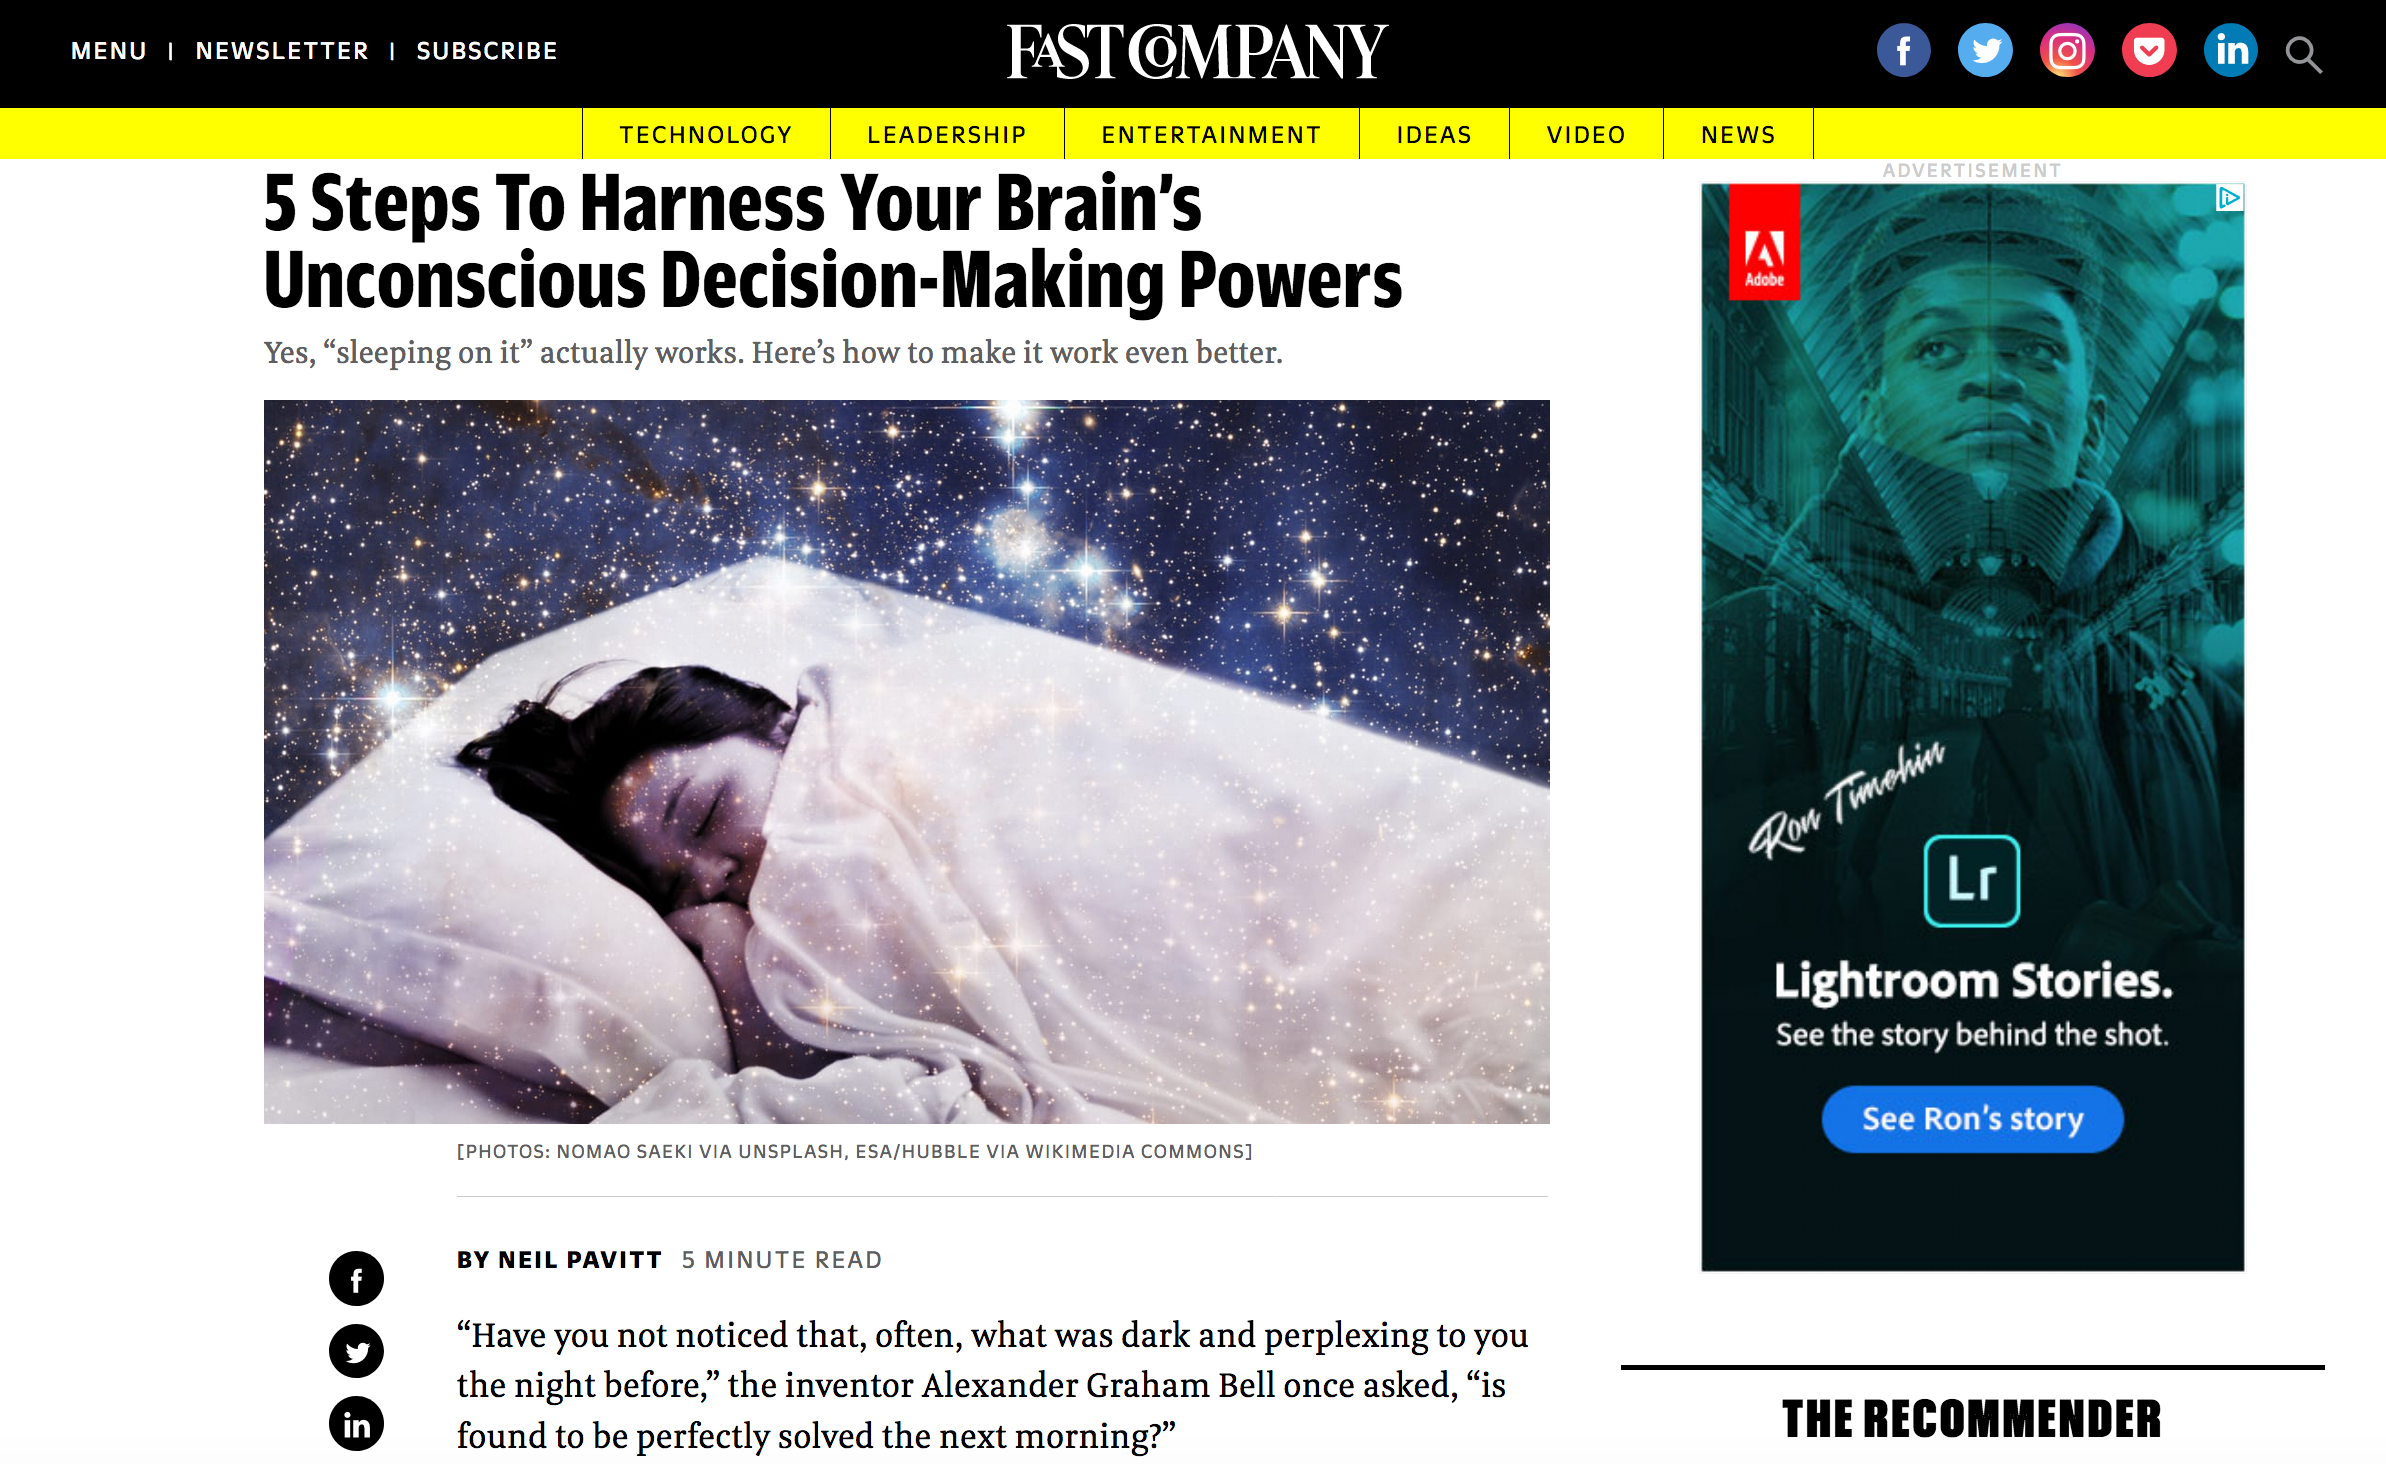 5 steps to harness your brain's unconscious decision-making powers